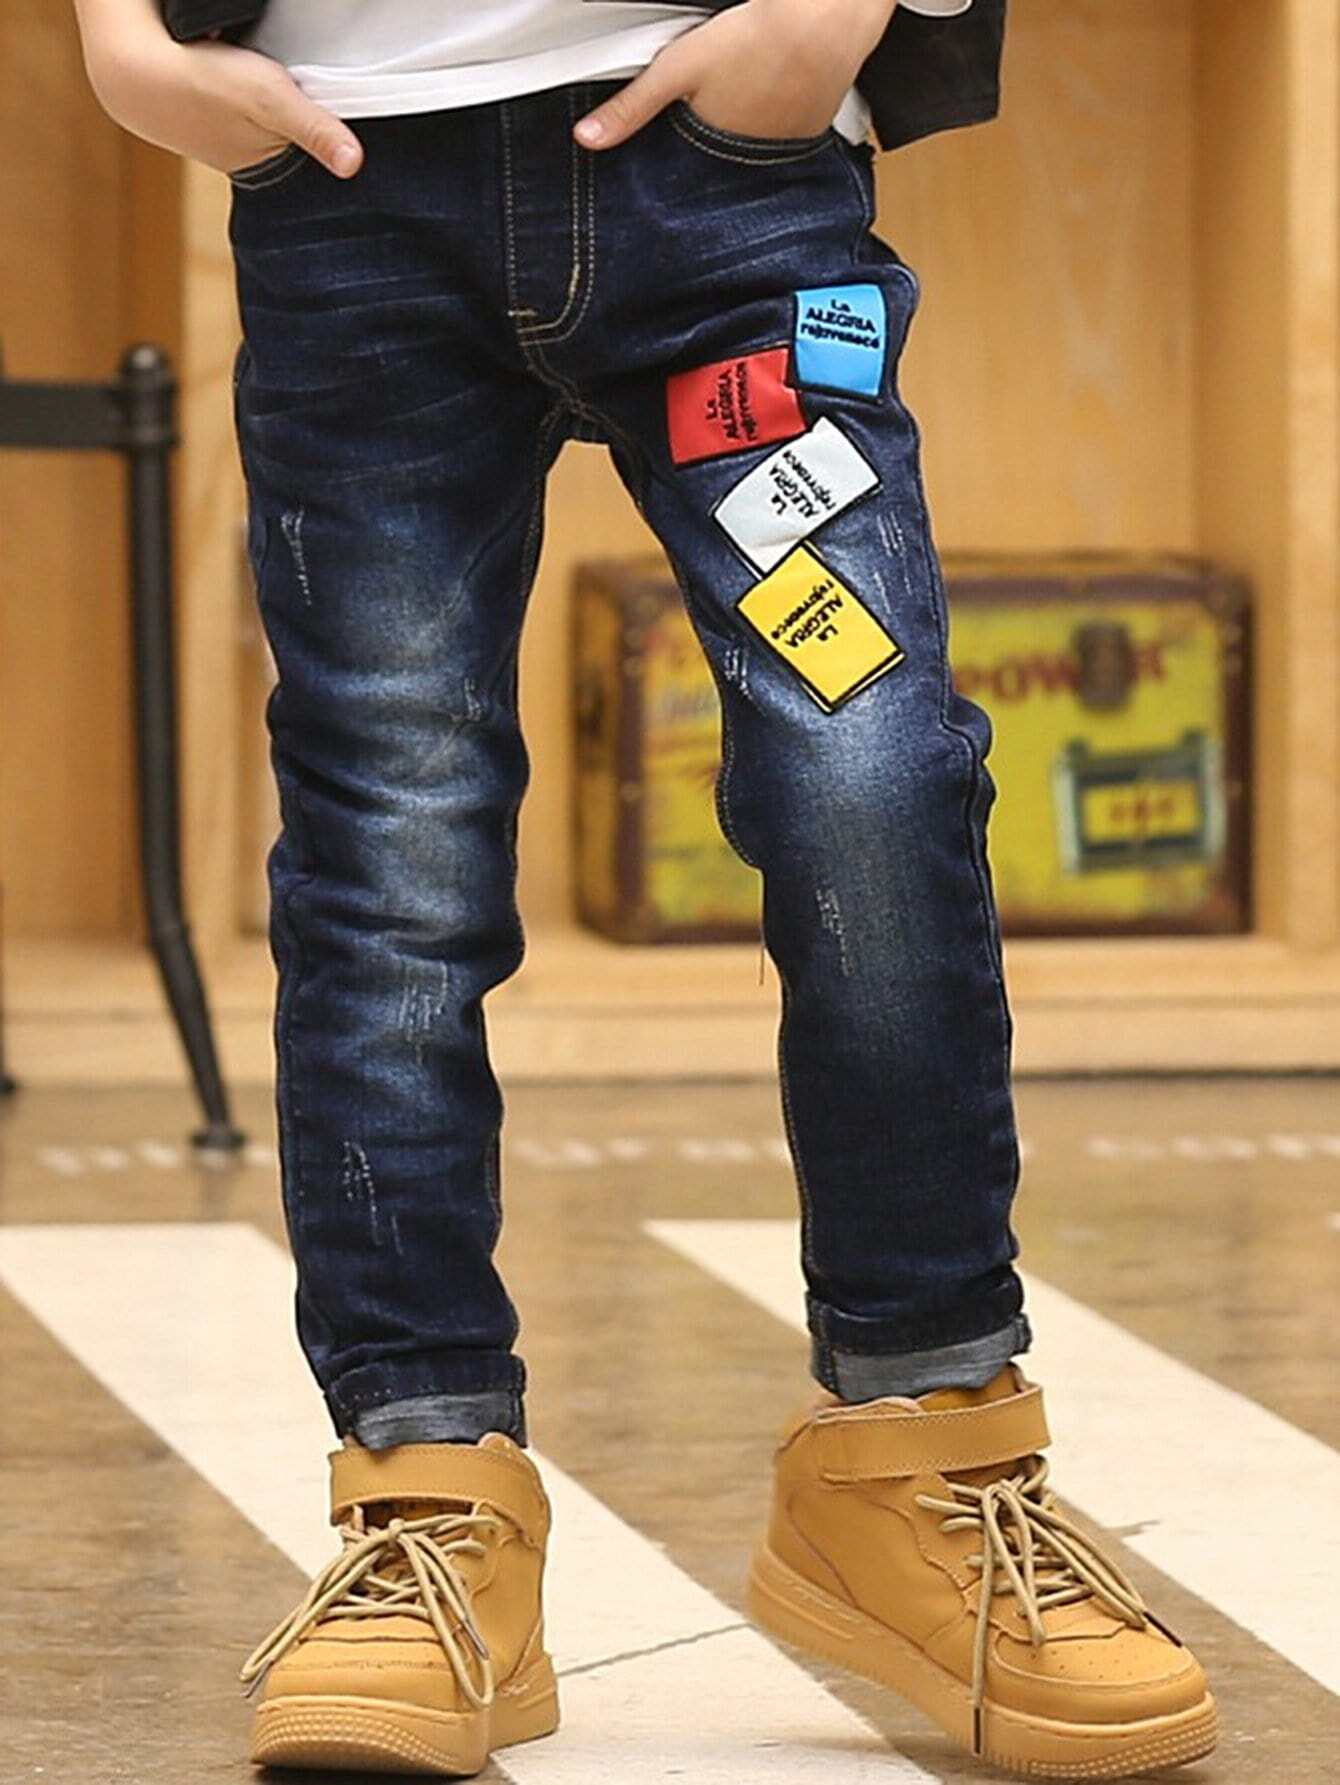 Multicolor Patched Detail Jeans patched embroidered jeans